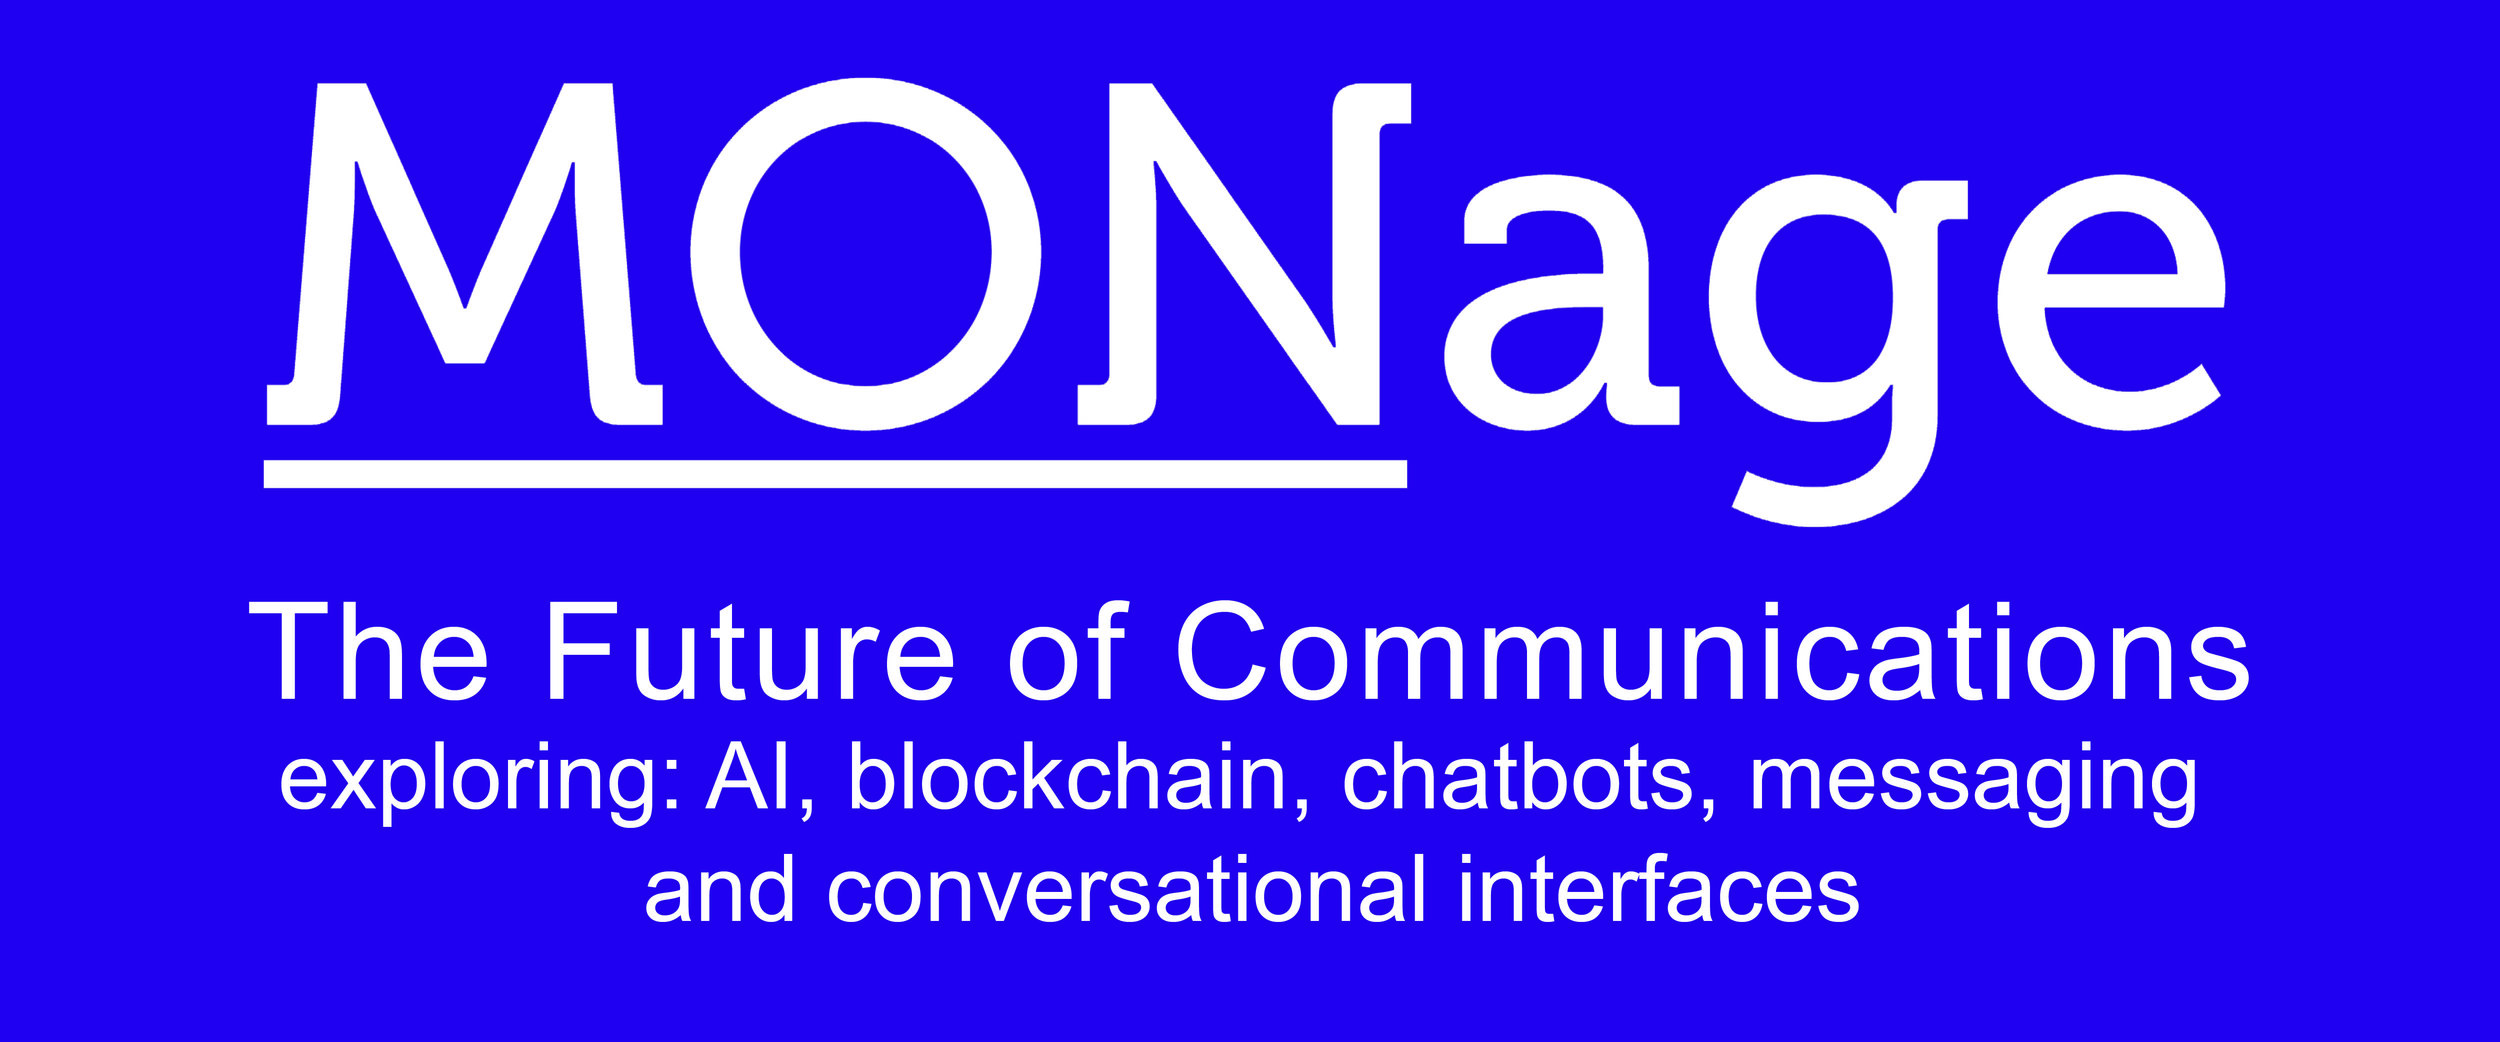 Monage_ new logo.jpg